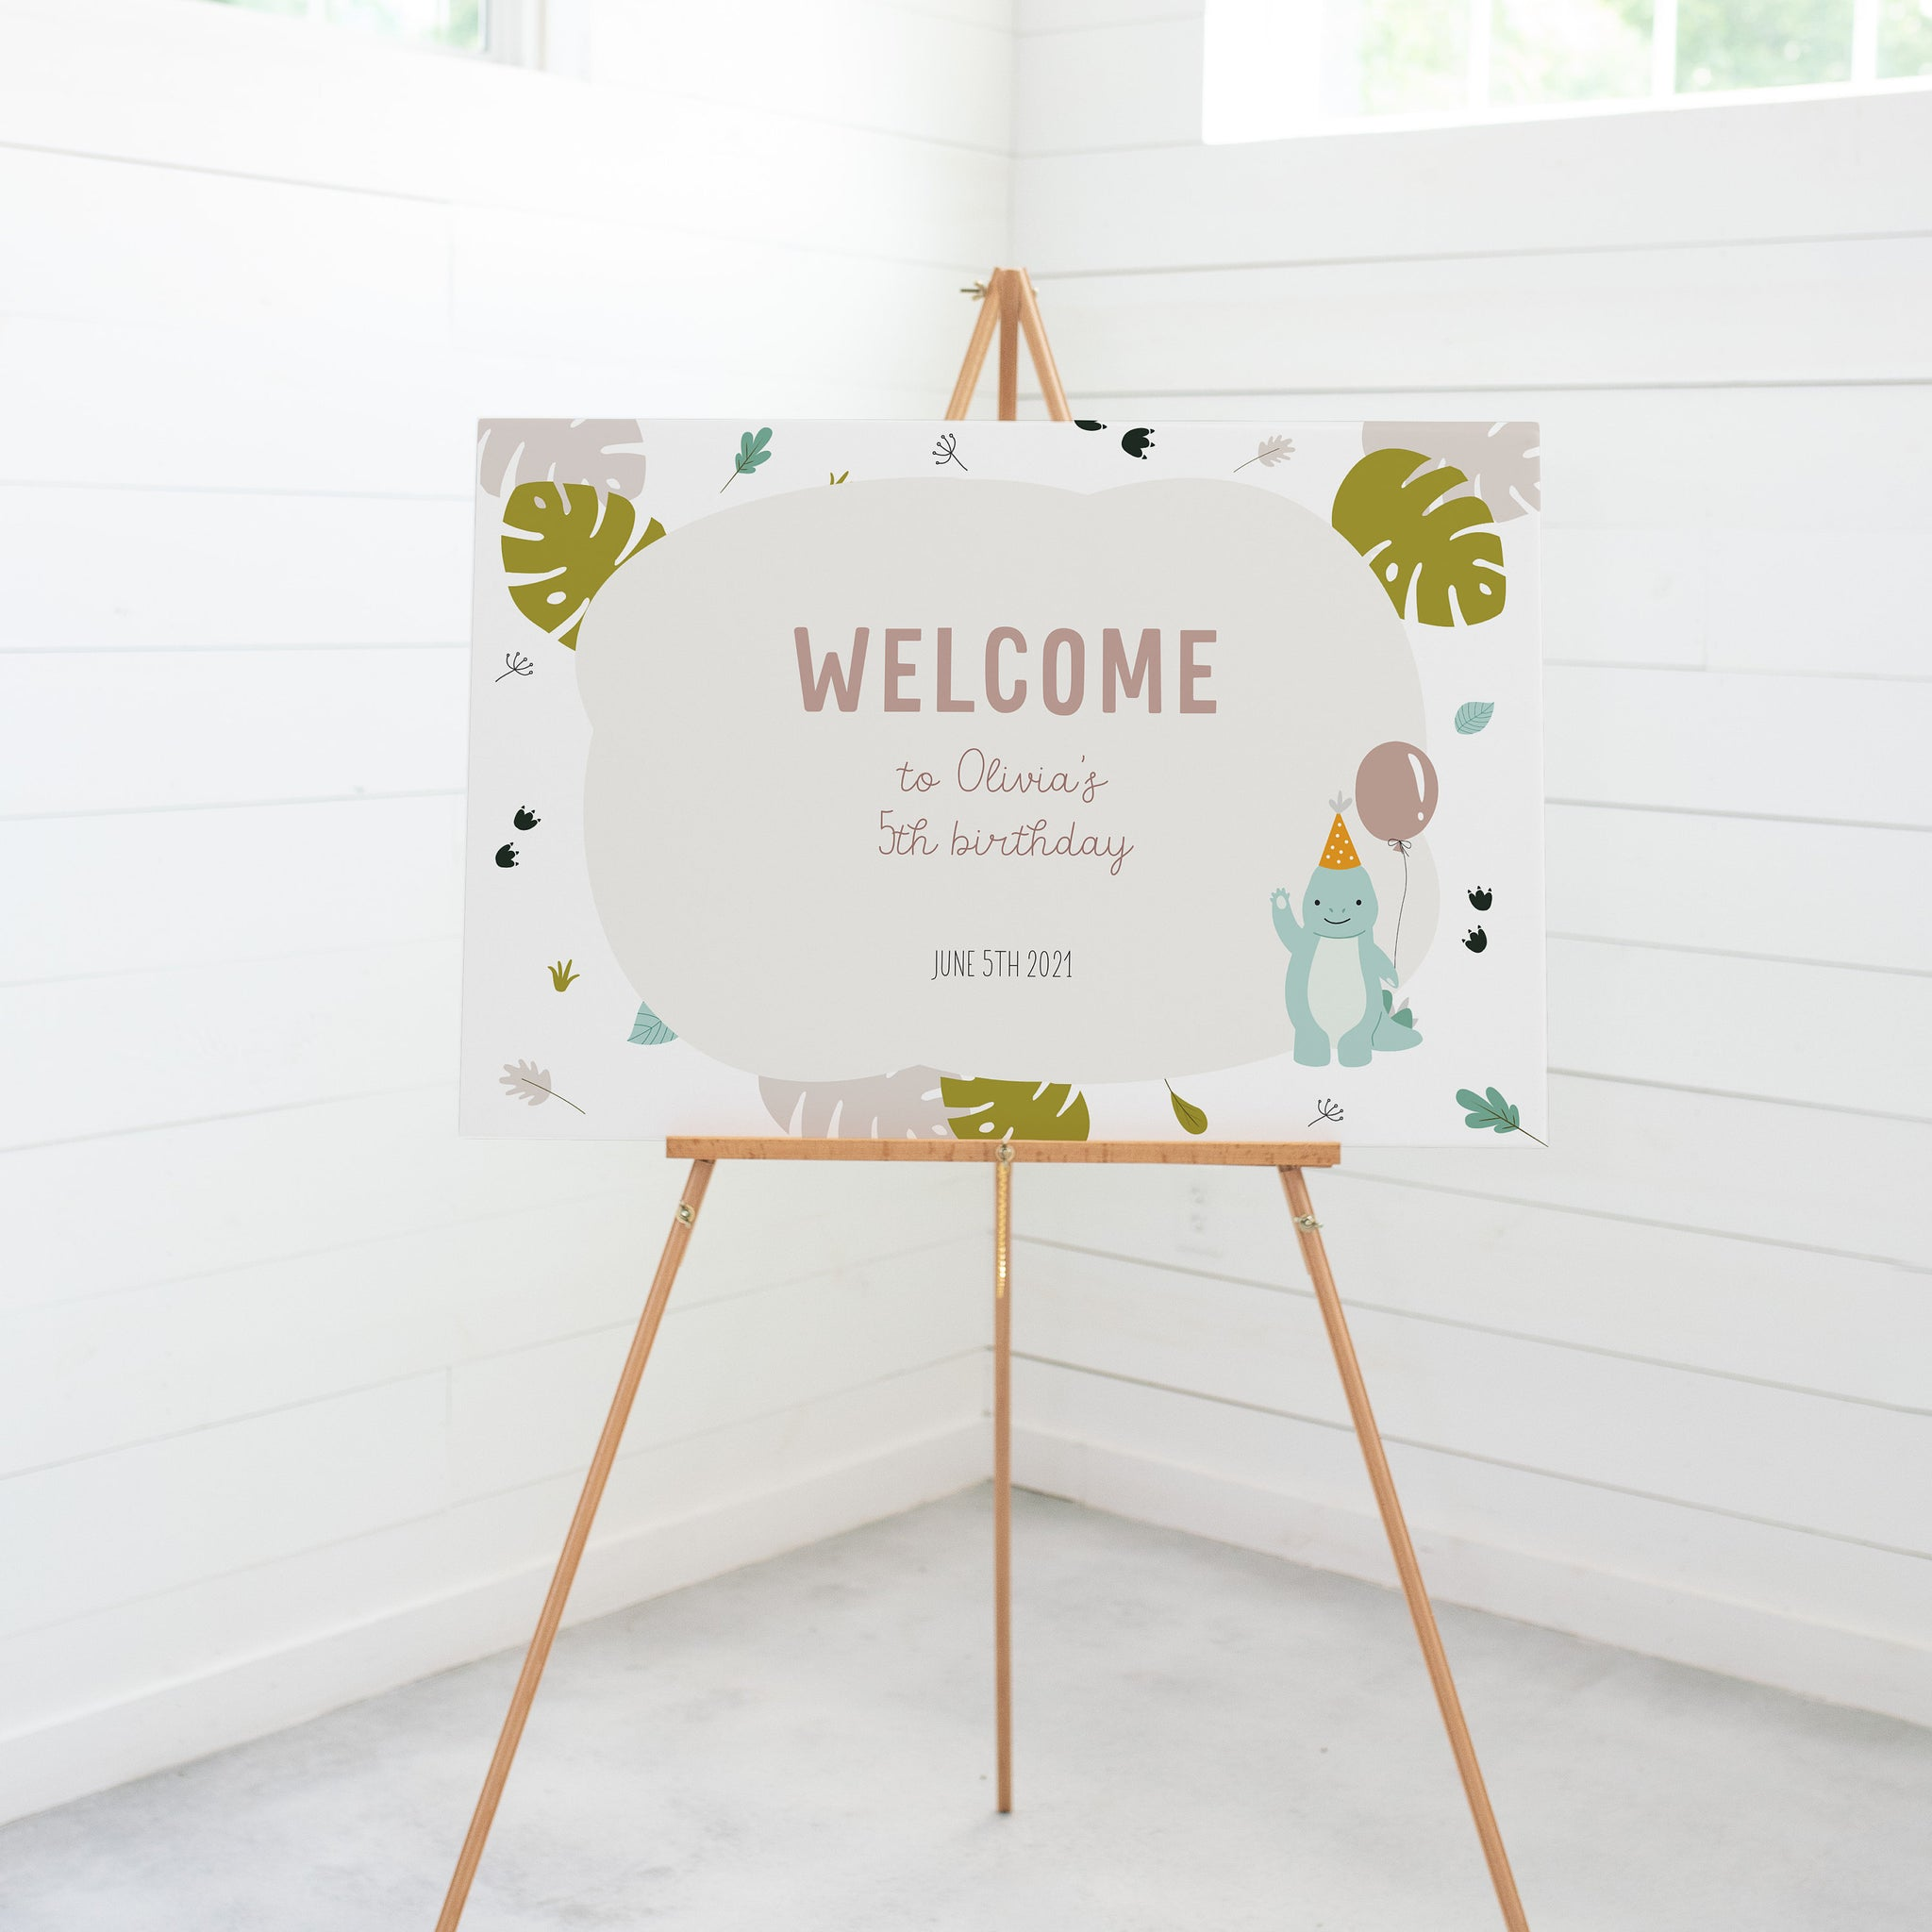 Dinosaur Party Welcome Sign Template, Dinosaur Party Printables Decorations, Dinosaur Birthday Welcome Sign, DIGITAL DOWNLOAD - LD100